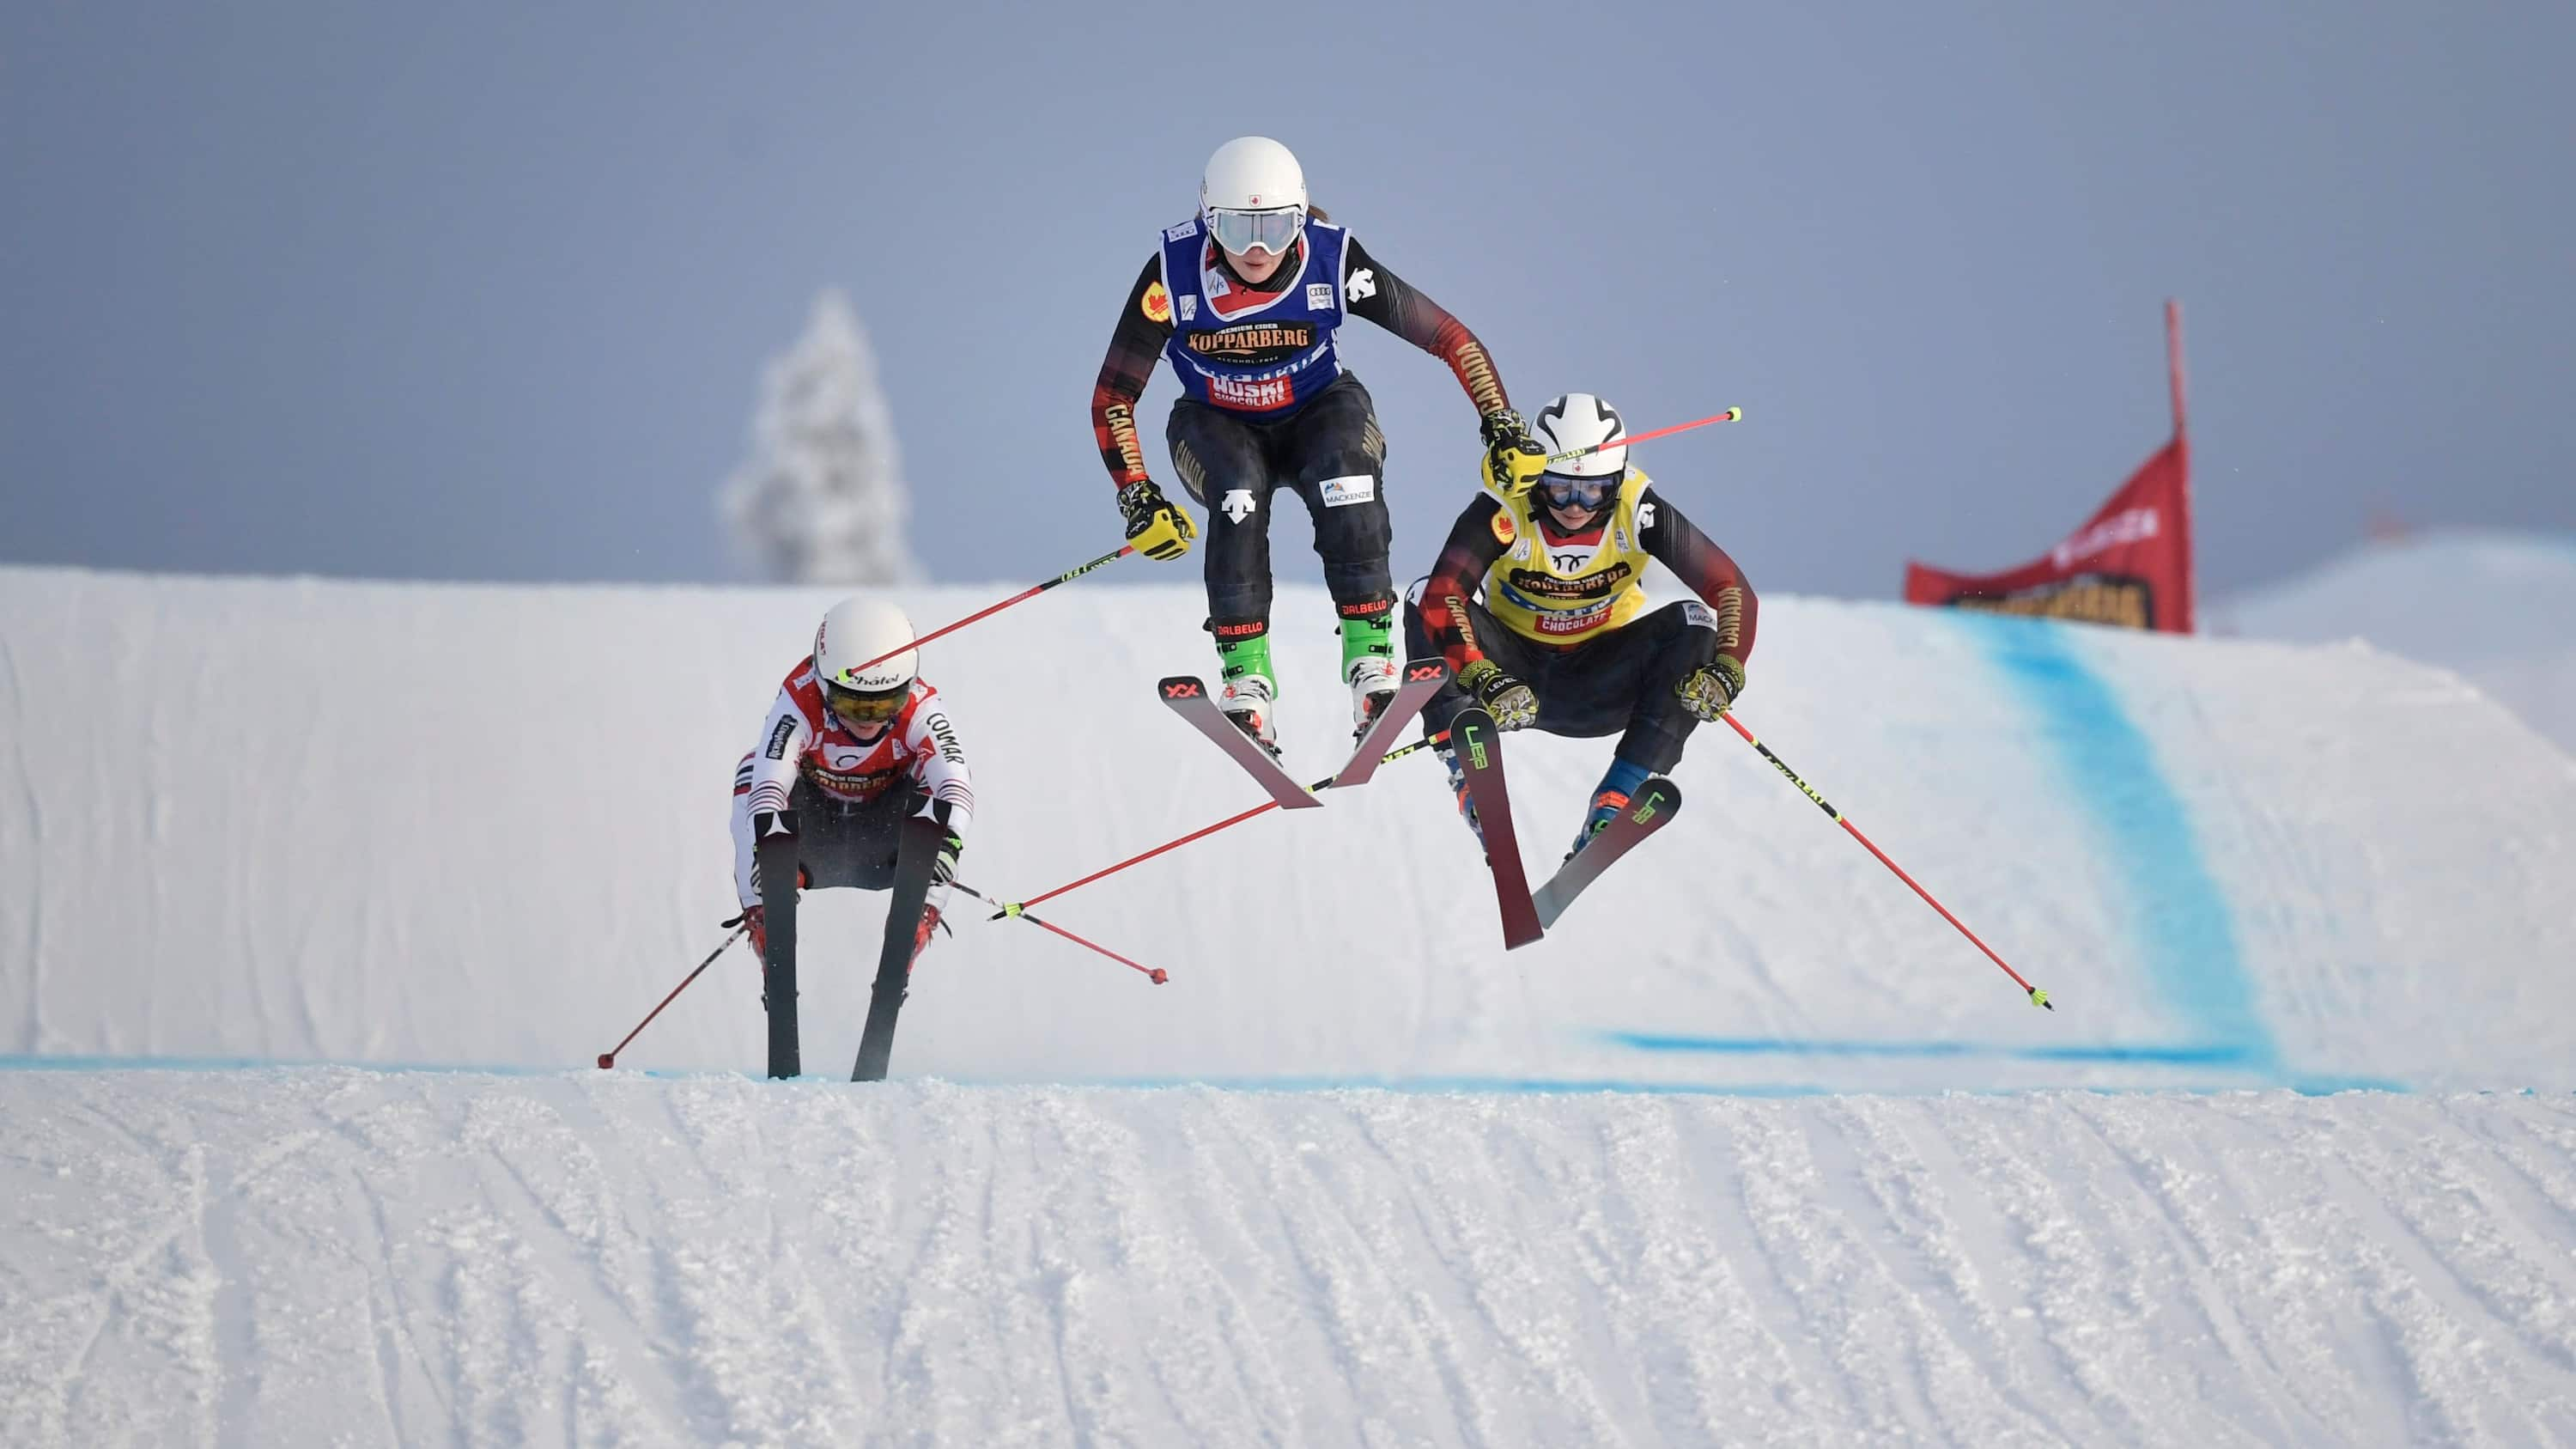 Canada's Courtney Hoffos claims ski cross World Cup bronze